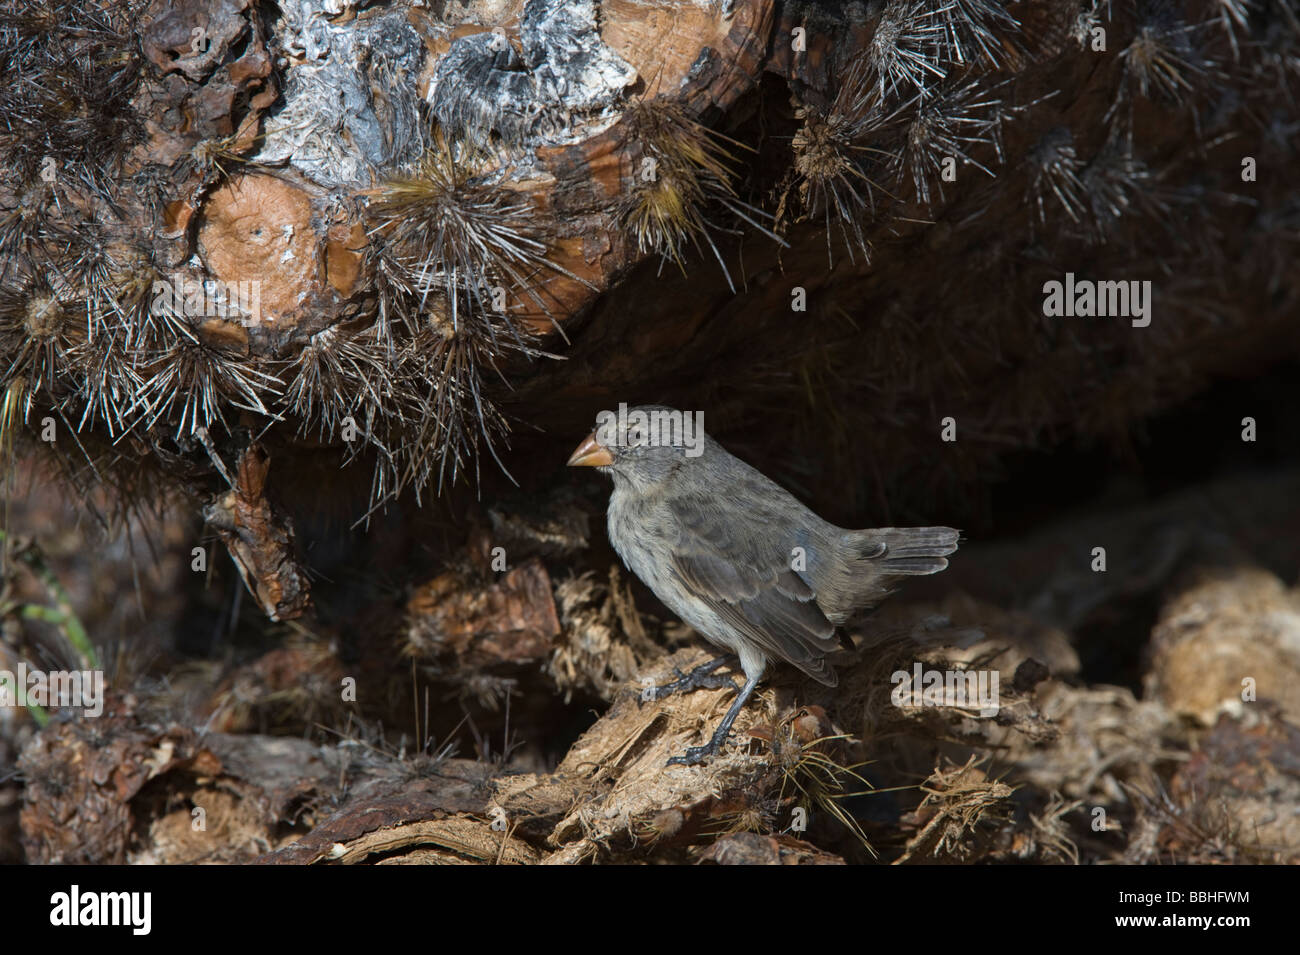 Small-billed ground finch (Geospiza fuliginosa) perched under opuntia South Plaza Galapagos Islands Ecuador Pacific - Stock Image